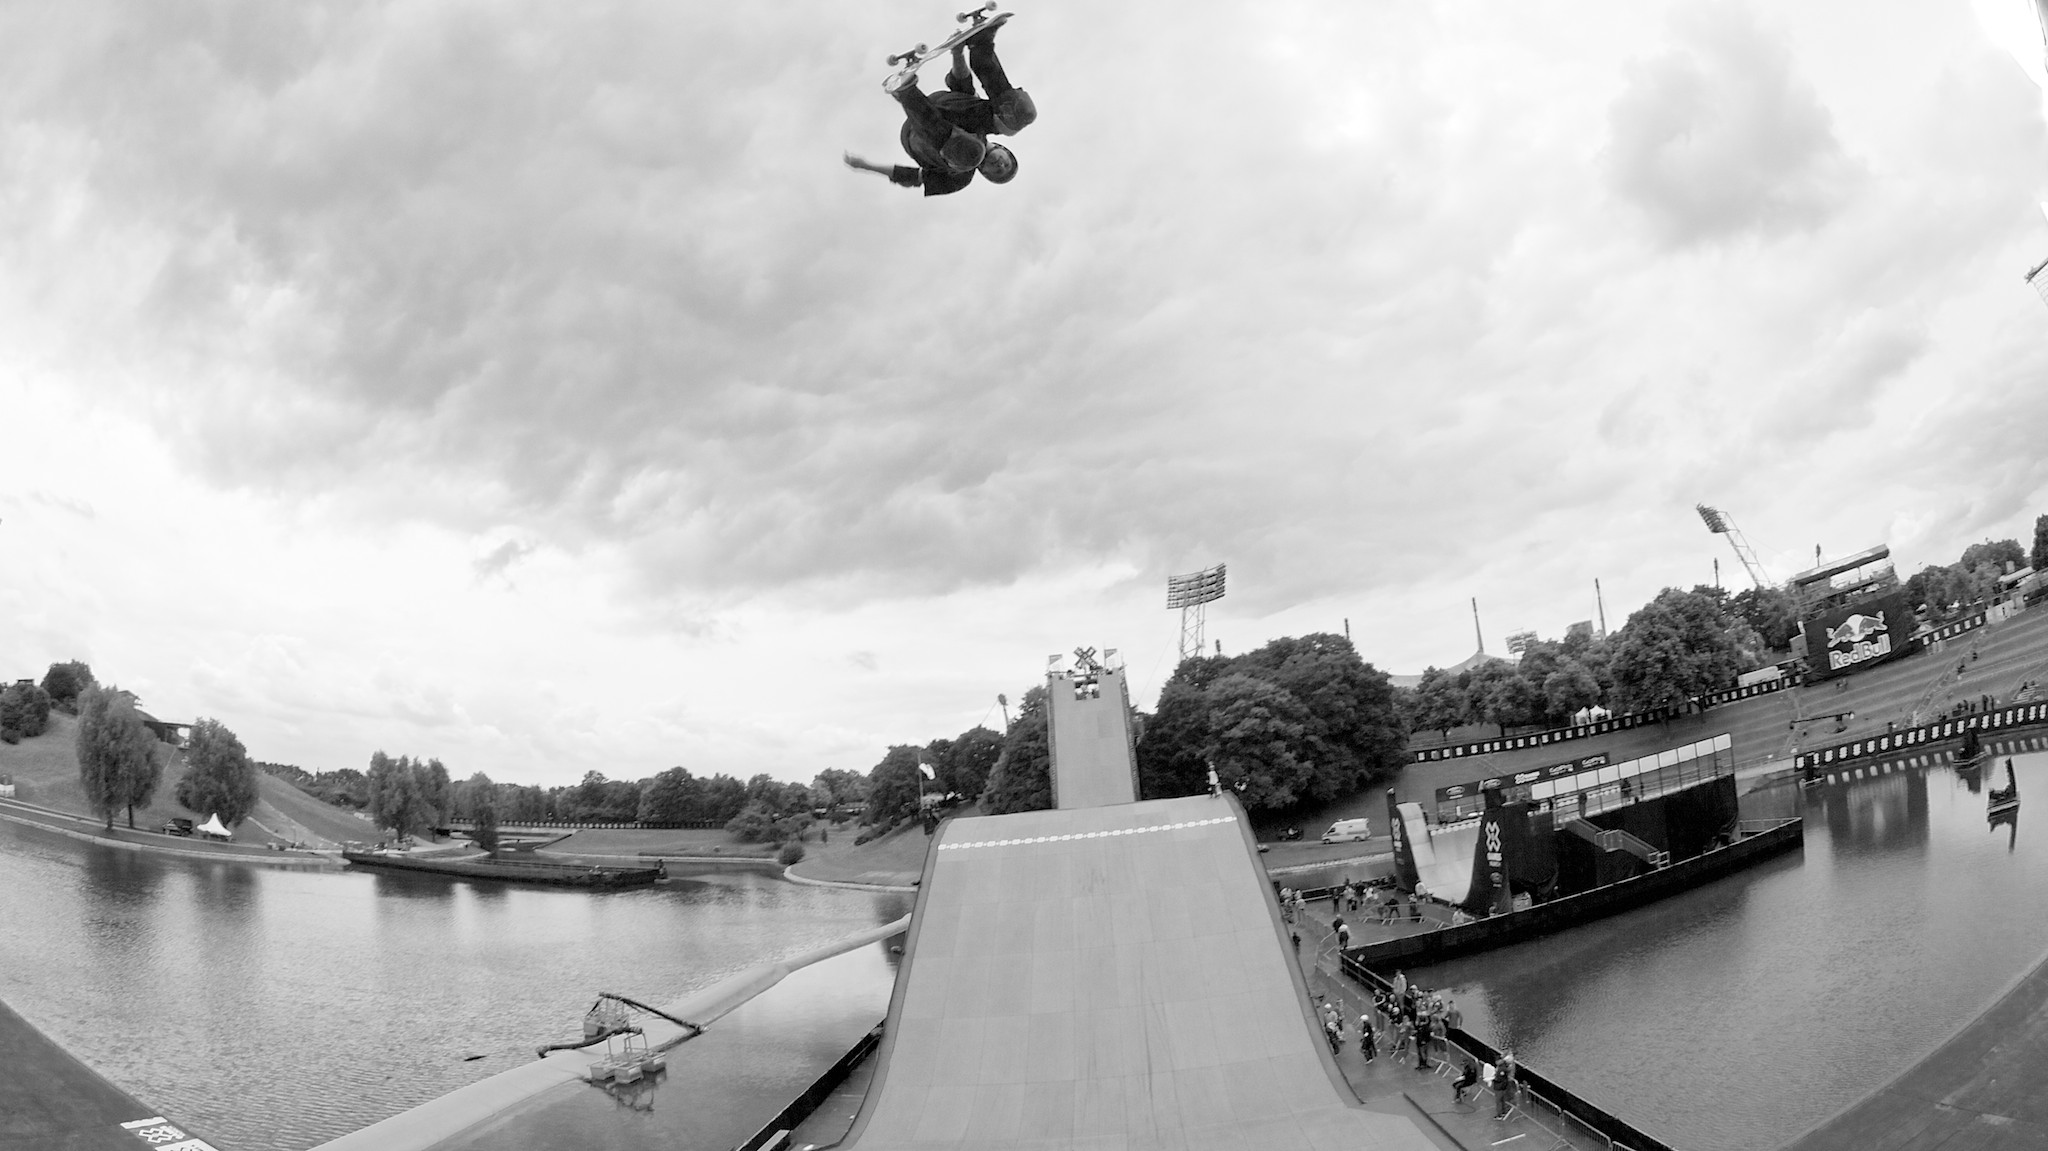 Treinos do Big Air nos X Games Munich